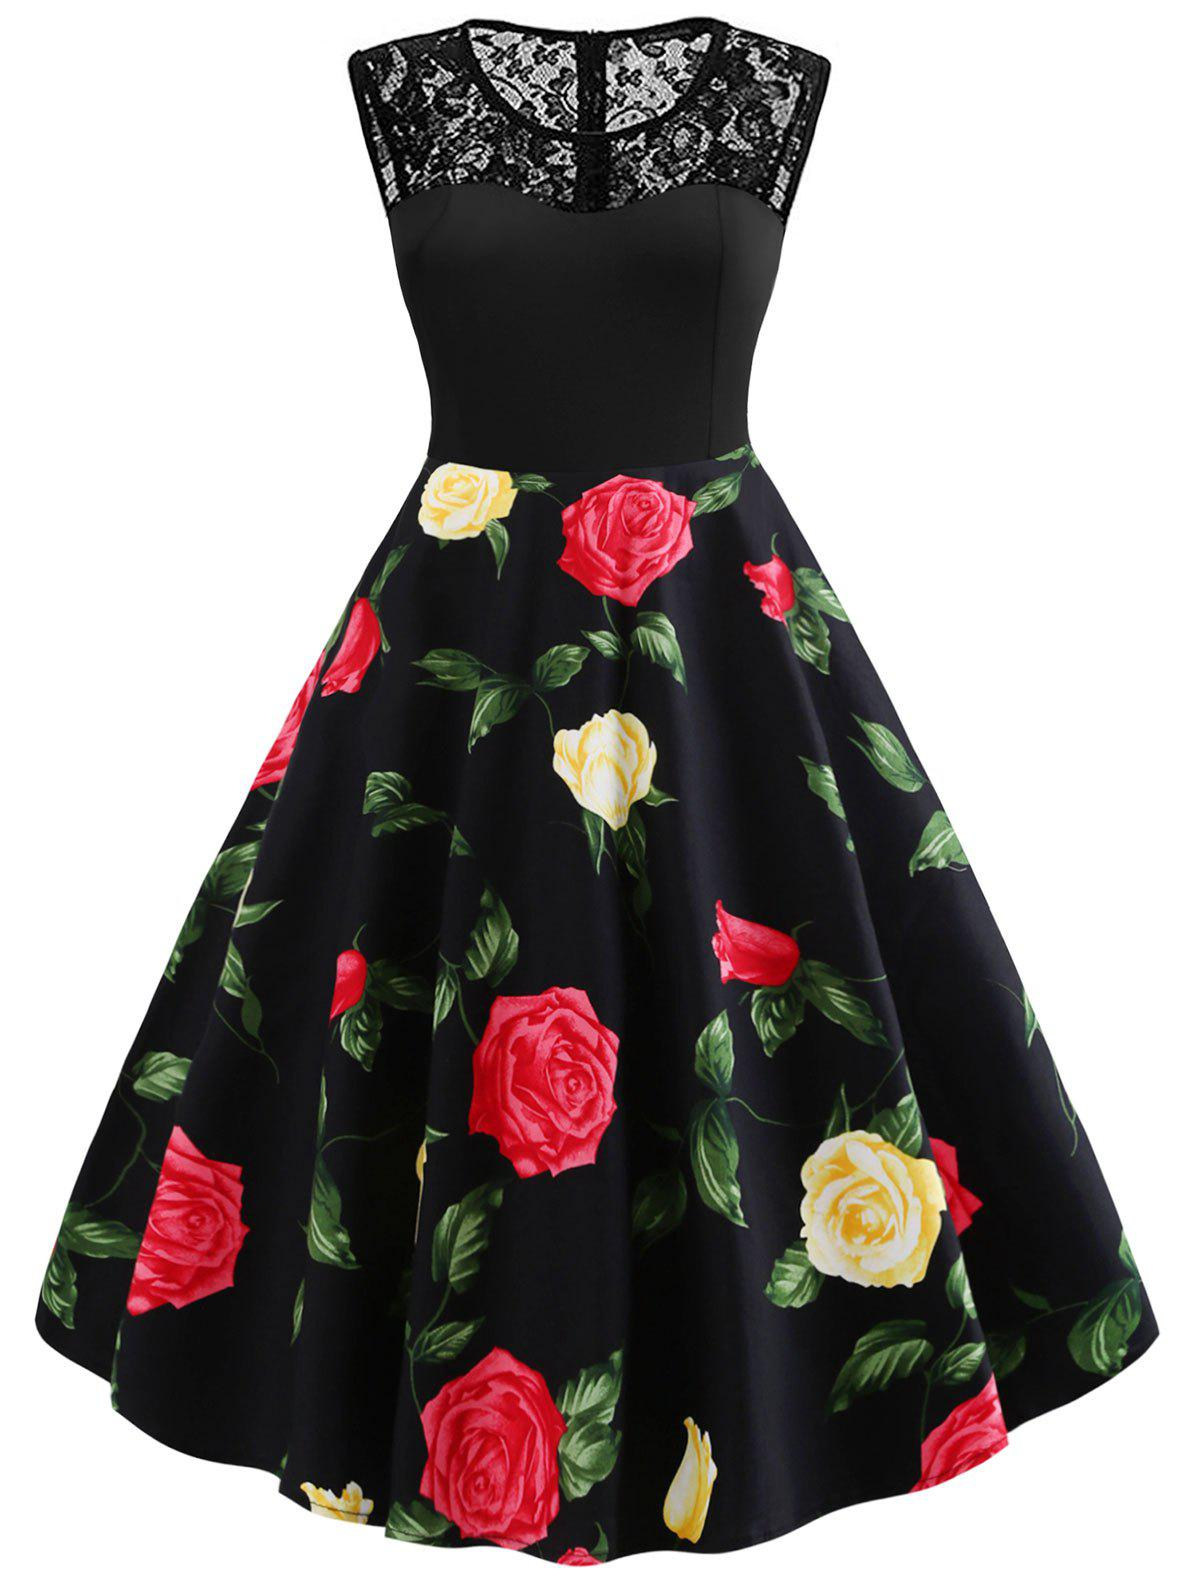 Fashion Plus Size Lace Insert Floral Pin Up Dress